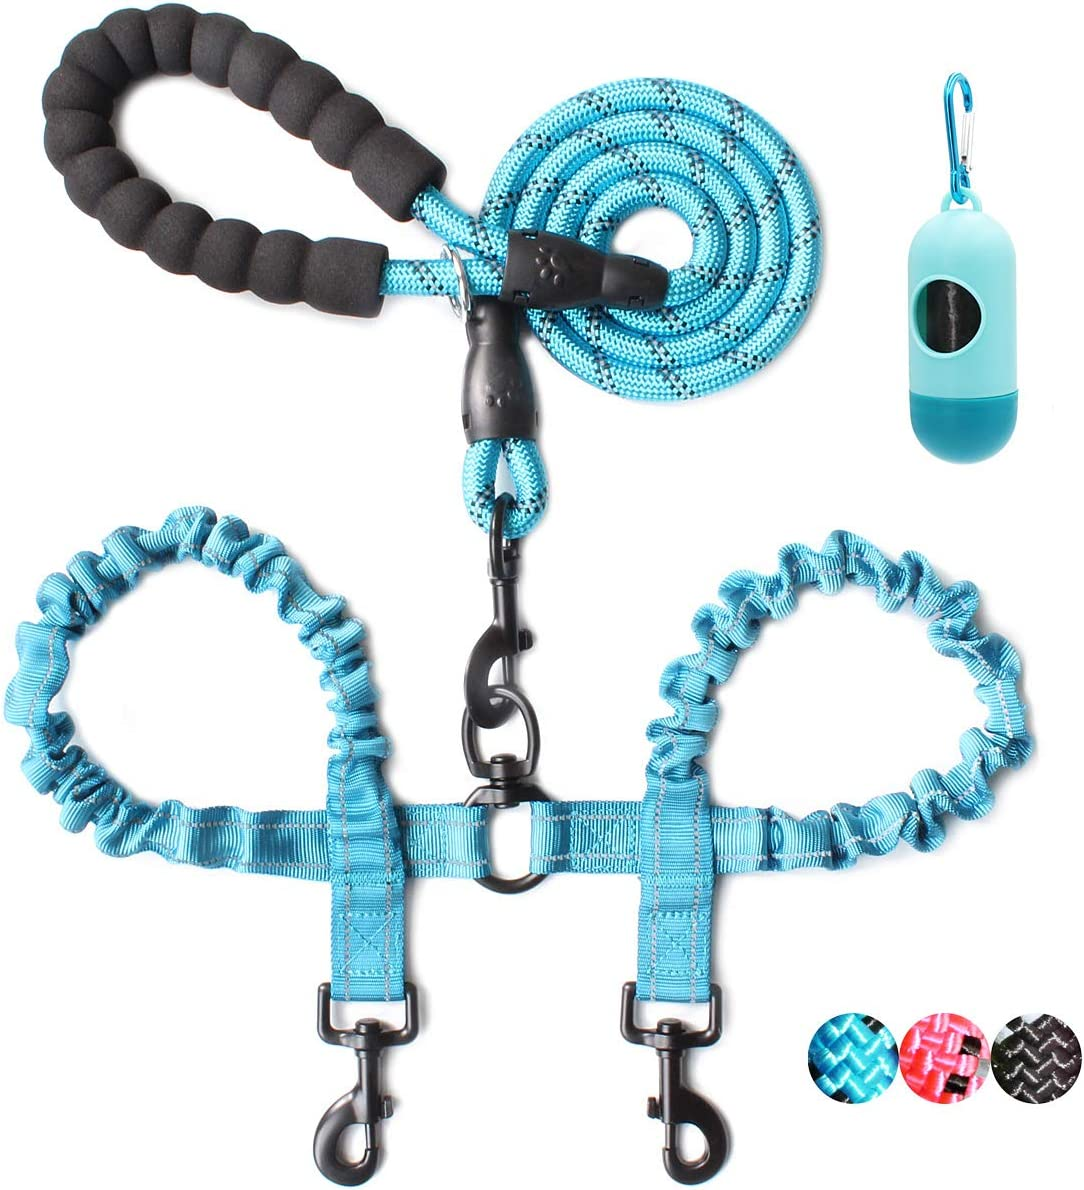 BAAPET Double Dog Leash 4 Manufacturer regenerated product FT Rope Tangle Free Sh Max 57% OFF with